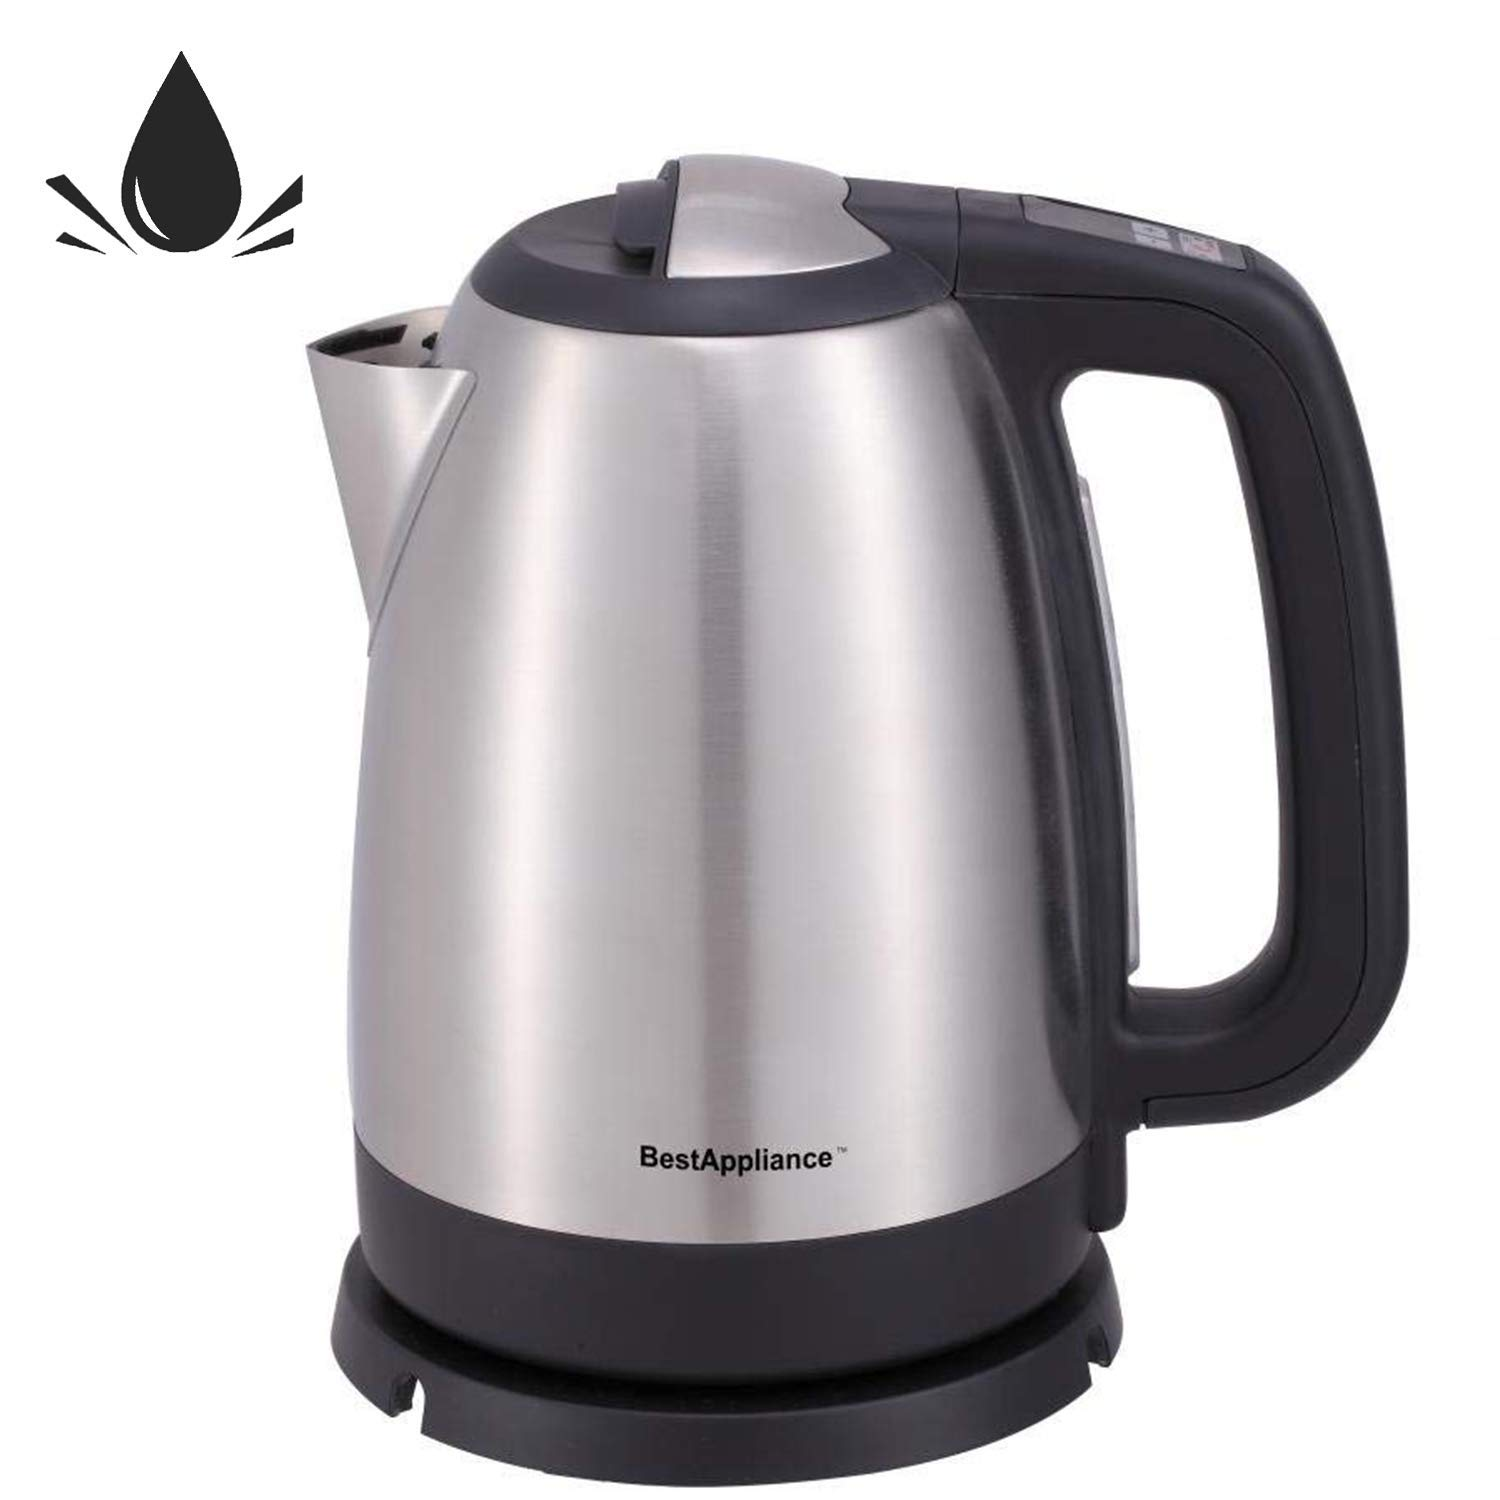 Electric Kettle Stainless Steel Fast Boiling Tea Kettle Cordless Water Kettle 1500W Electric Hot Water Kettle with Auto Shut-Off & Boil-Dry Protection Tea Heater1.7 Liter/ 1.8 Quart